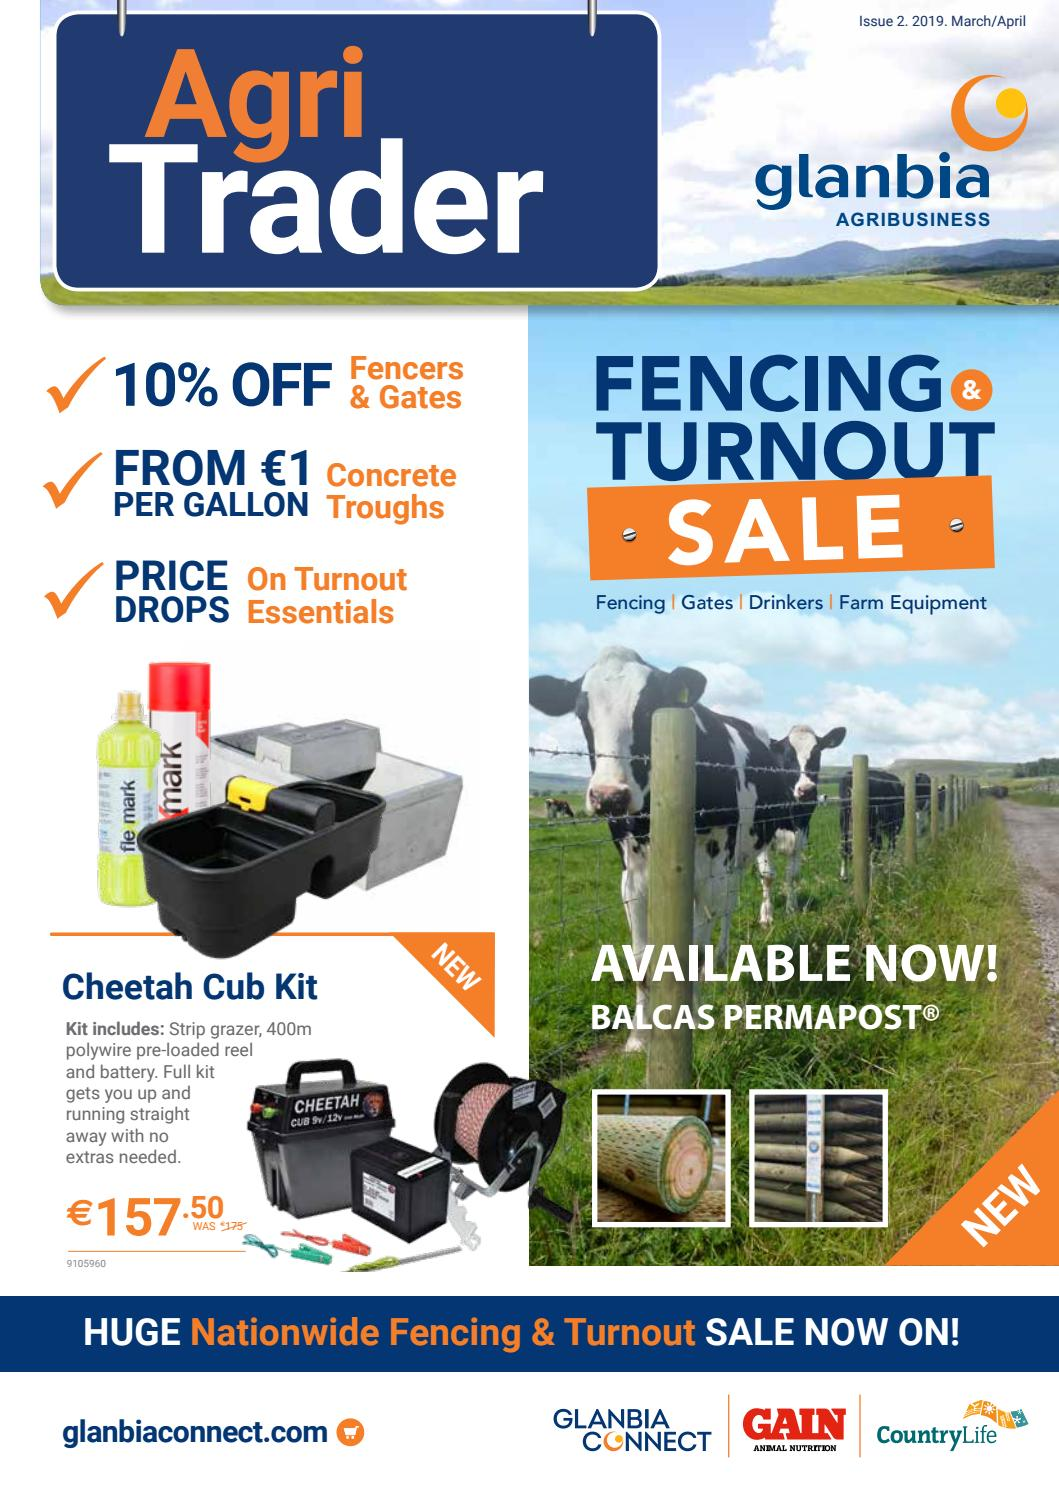 Agri-Trader Fencing & Turnout SALE Issue 2 March/April 2019